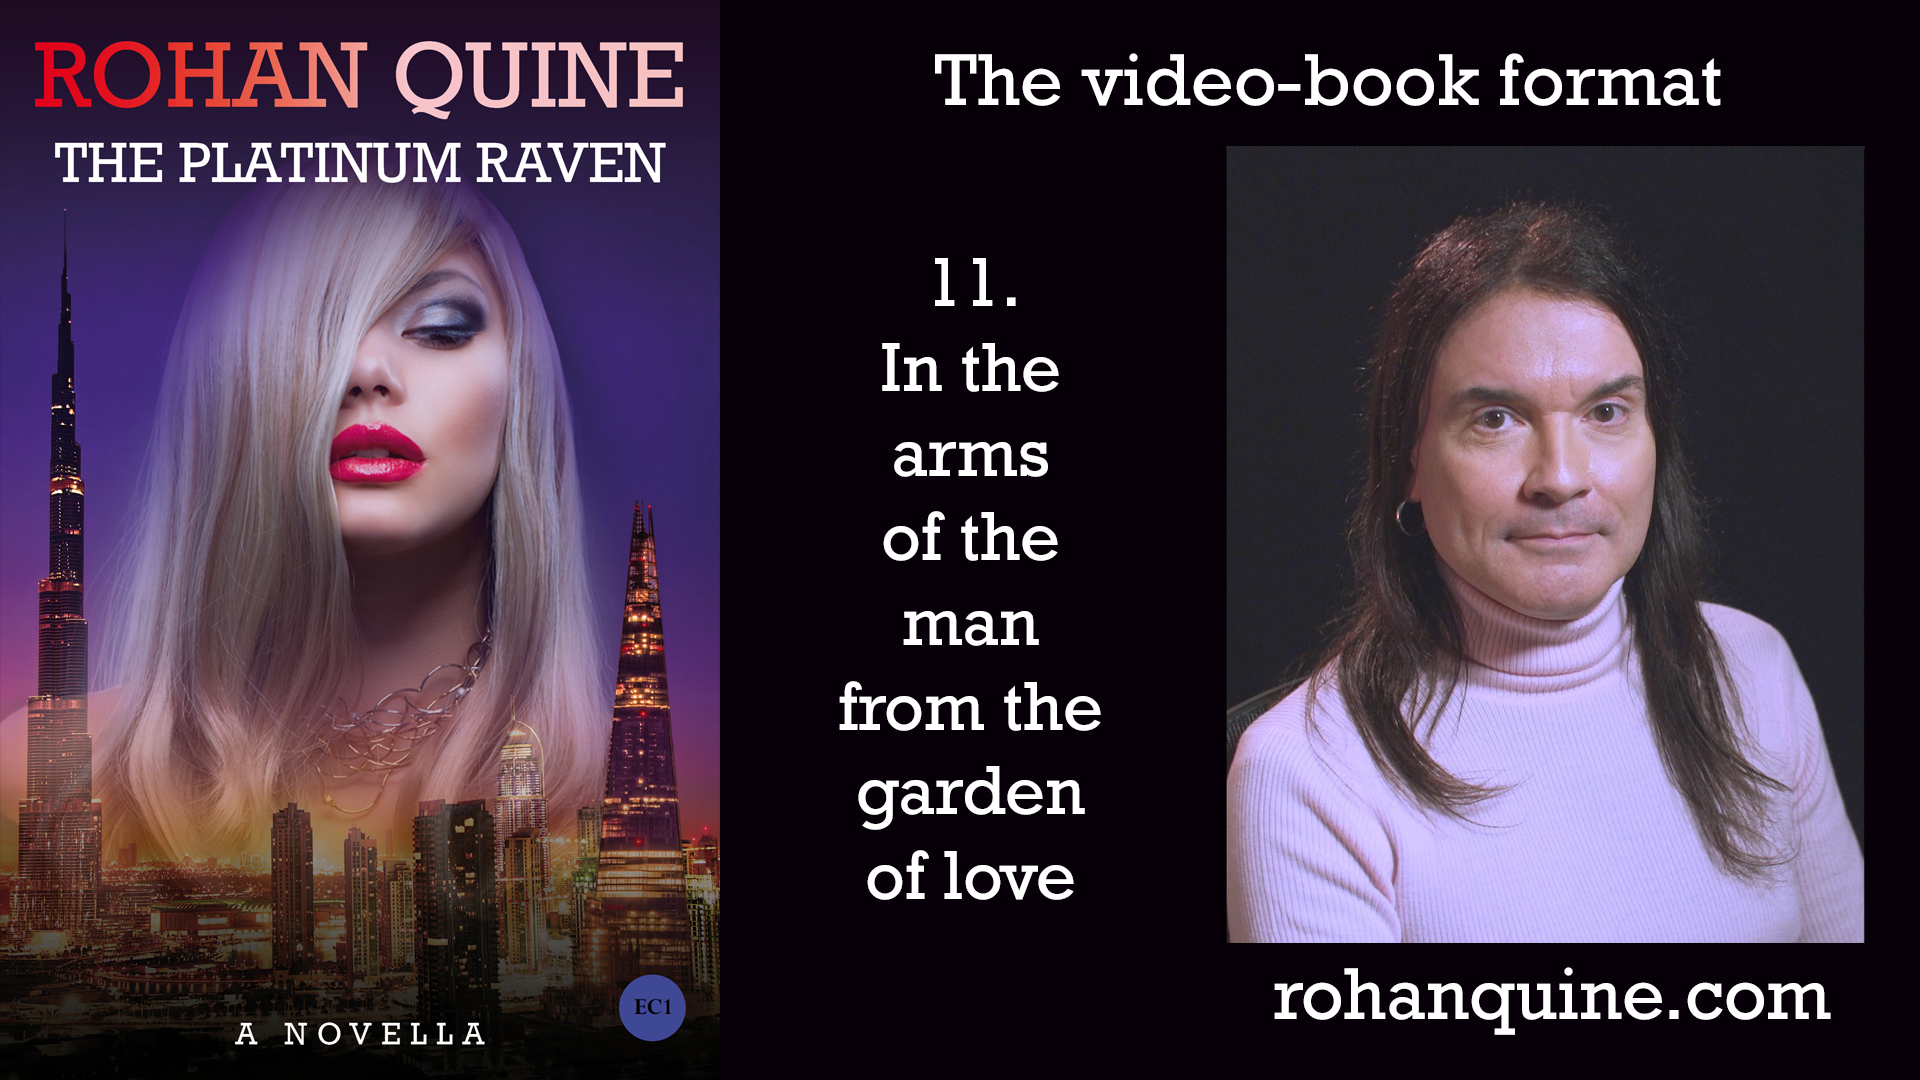 THE PLATINUM RAVEN by Rohan Quine - video-book format - chapter 11